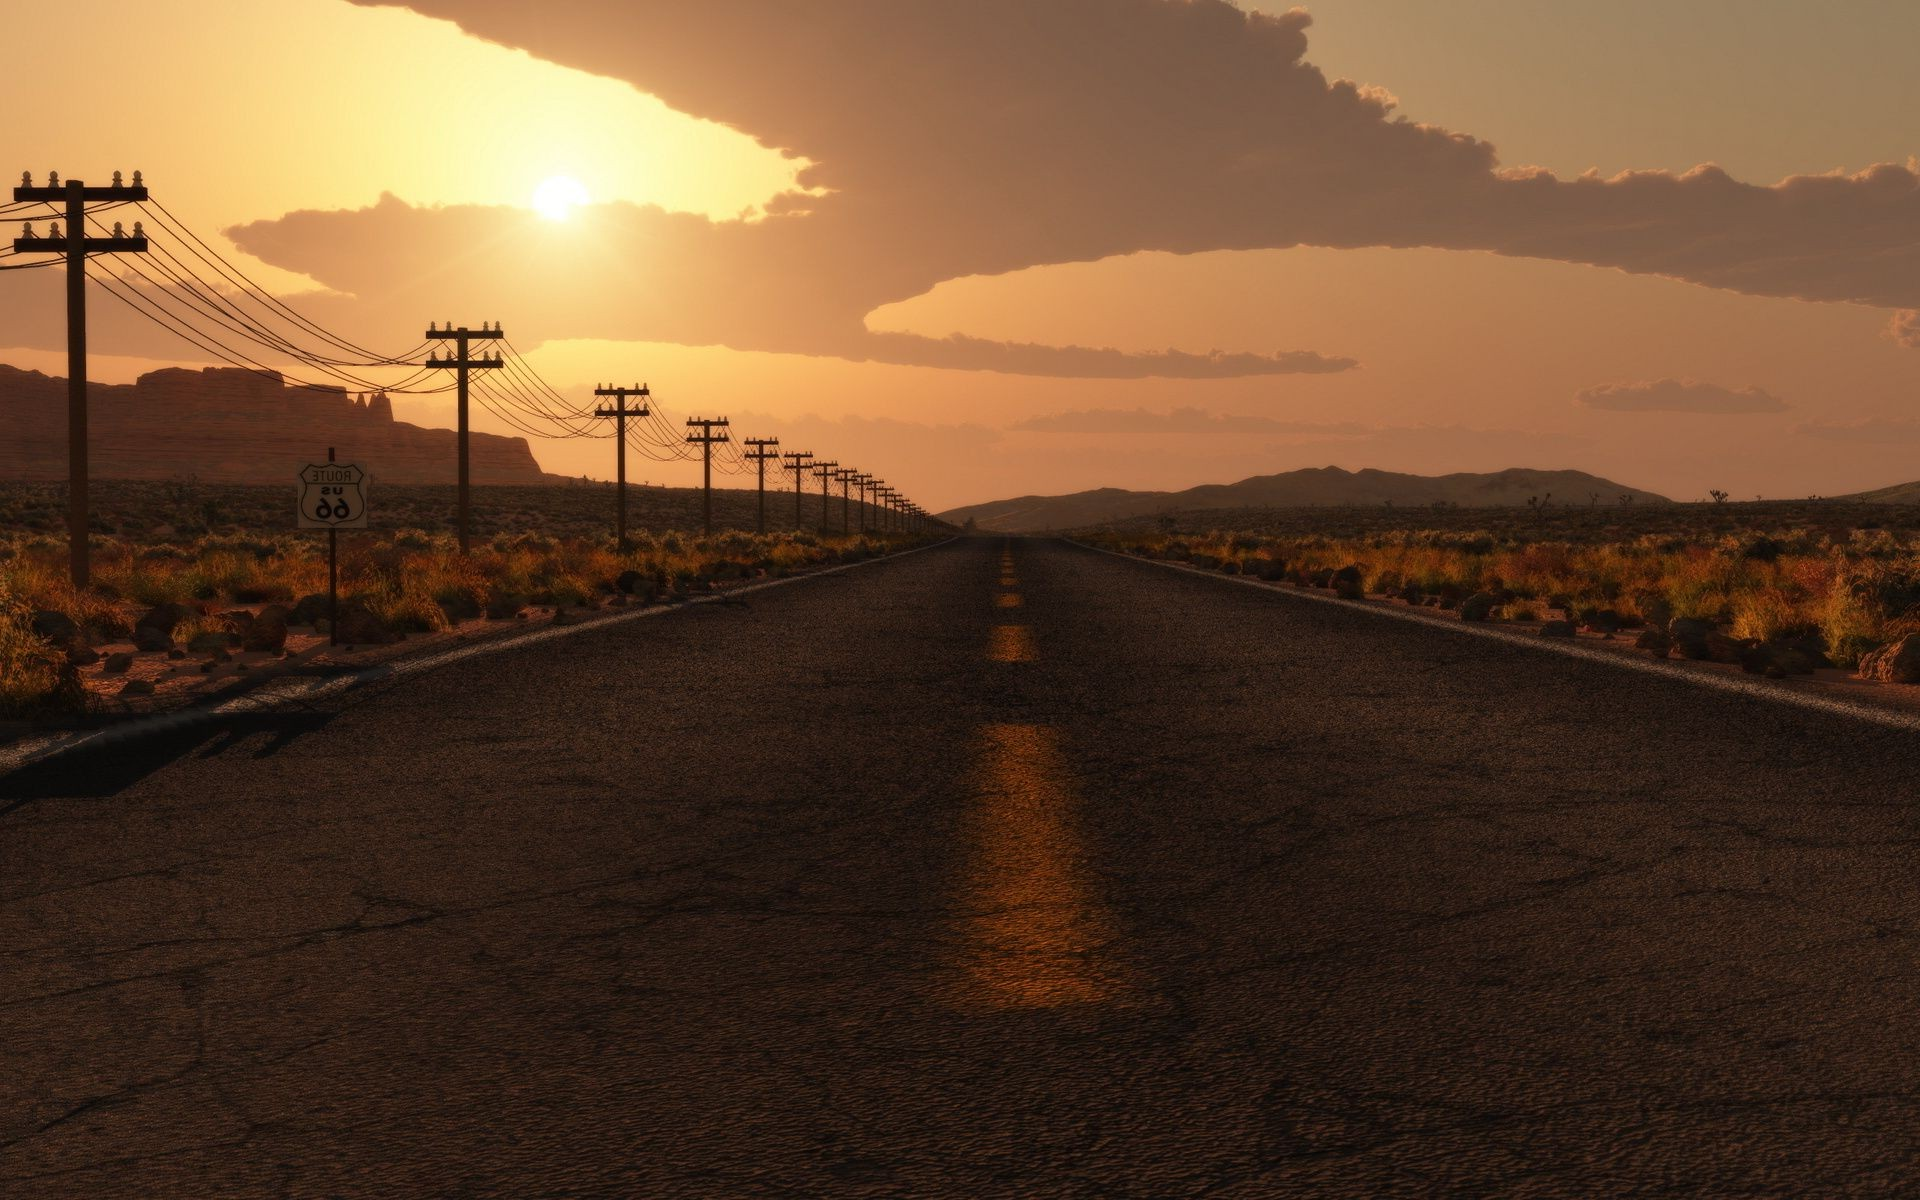 Free Android Fall Wallpaper Highway To Road To Nowhere Track In The Desert Android